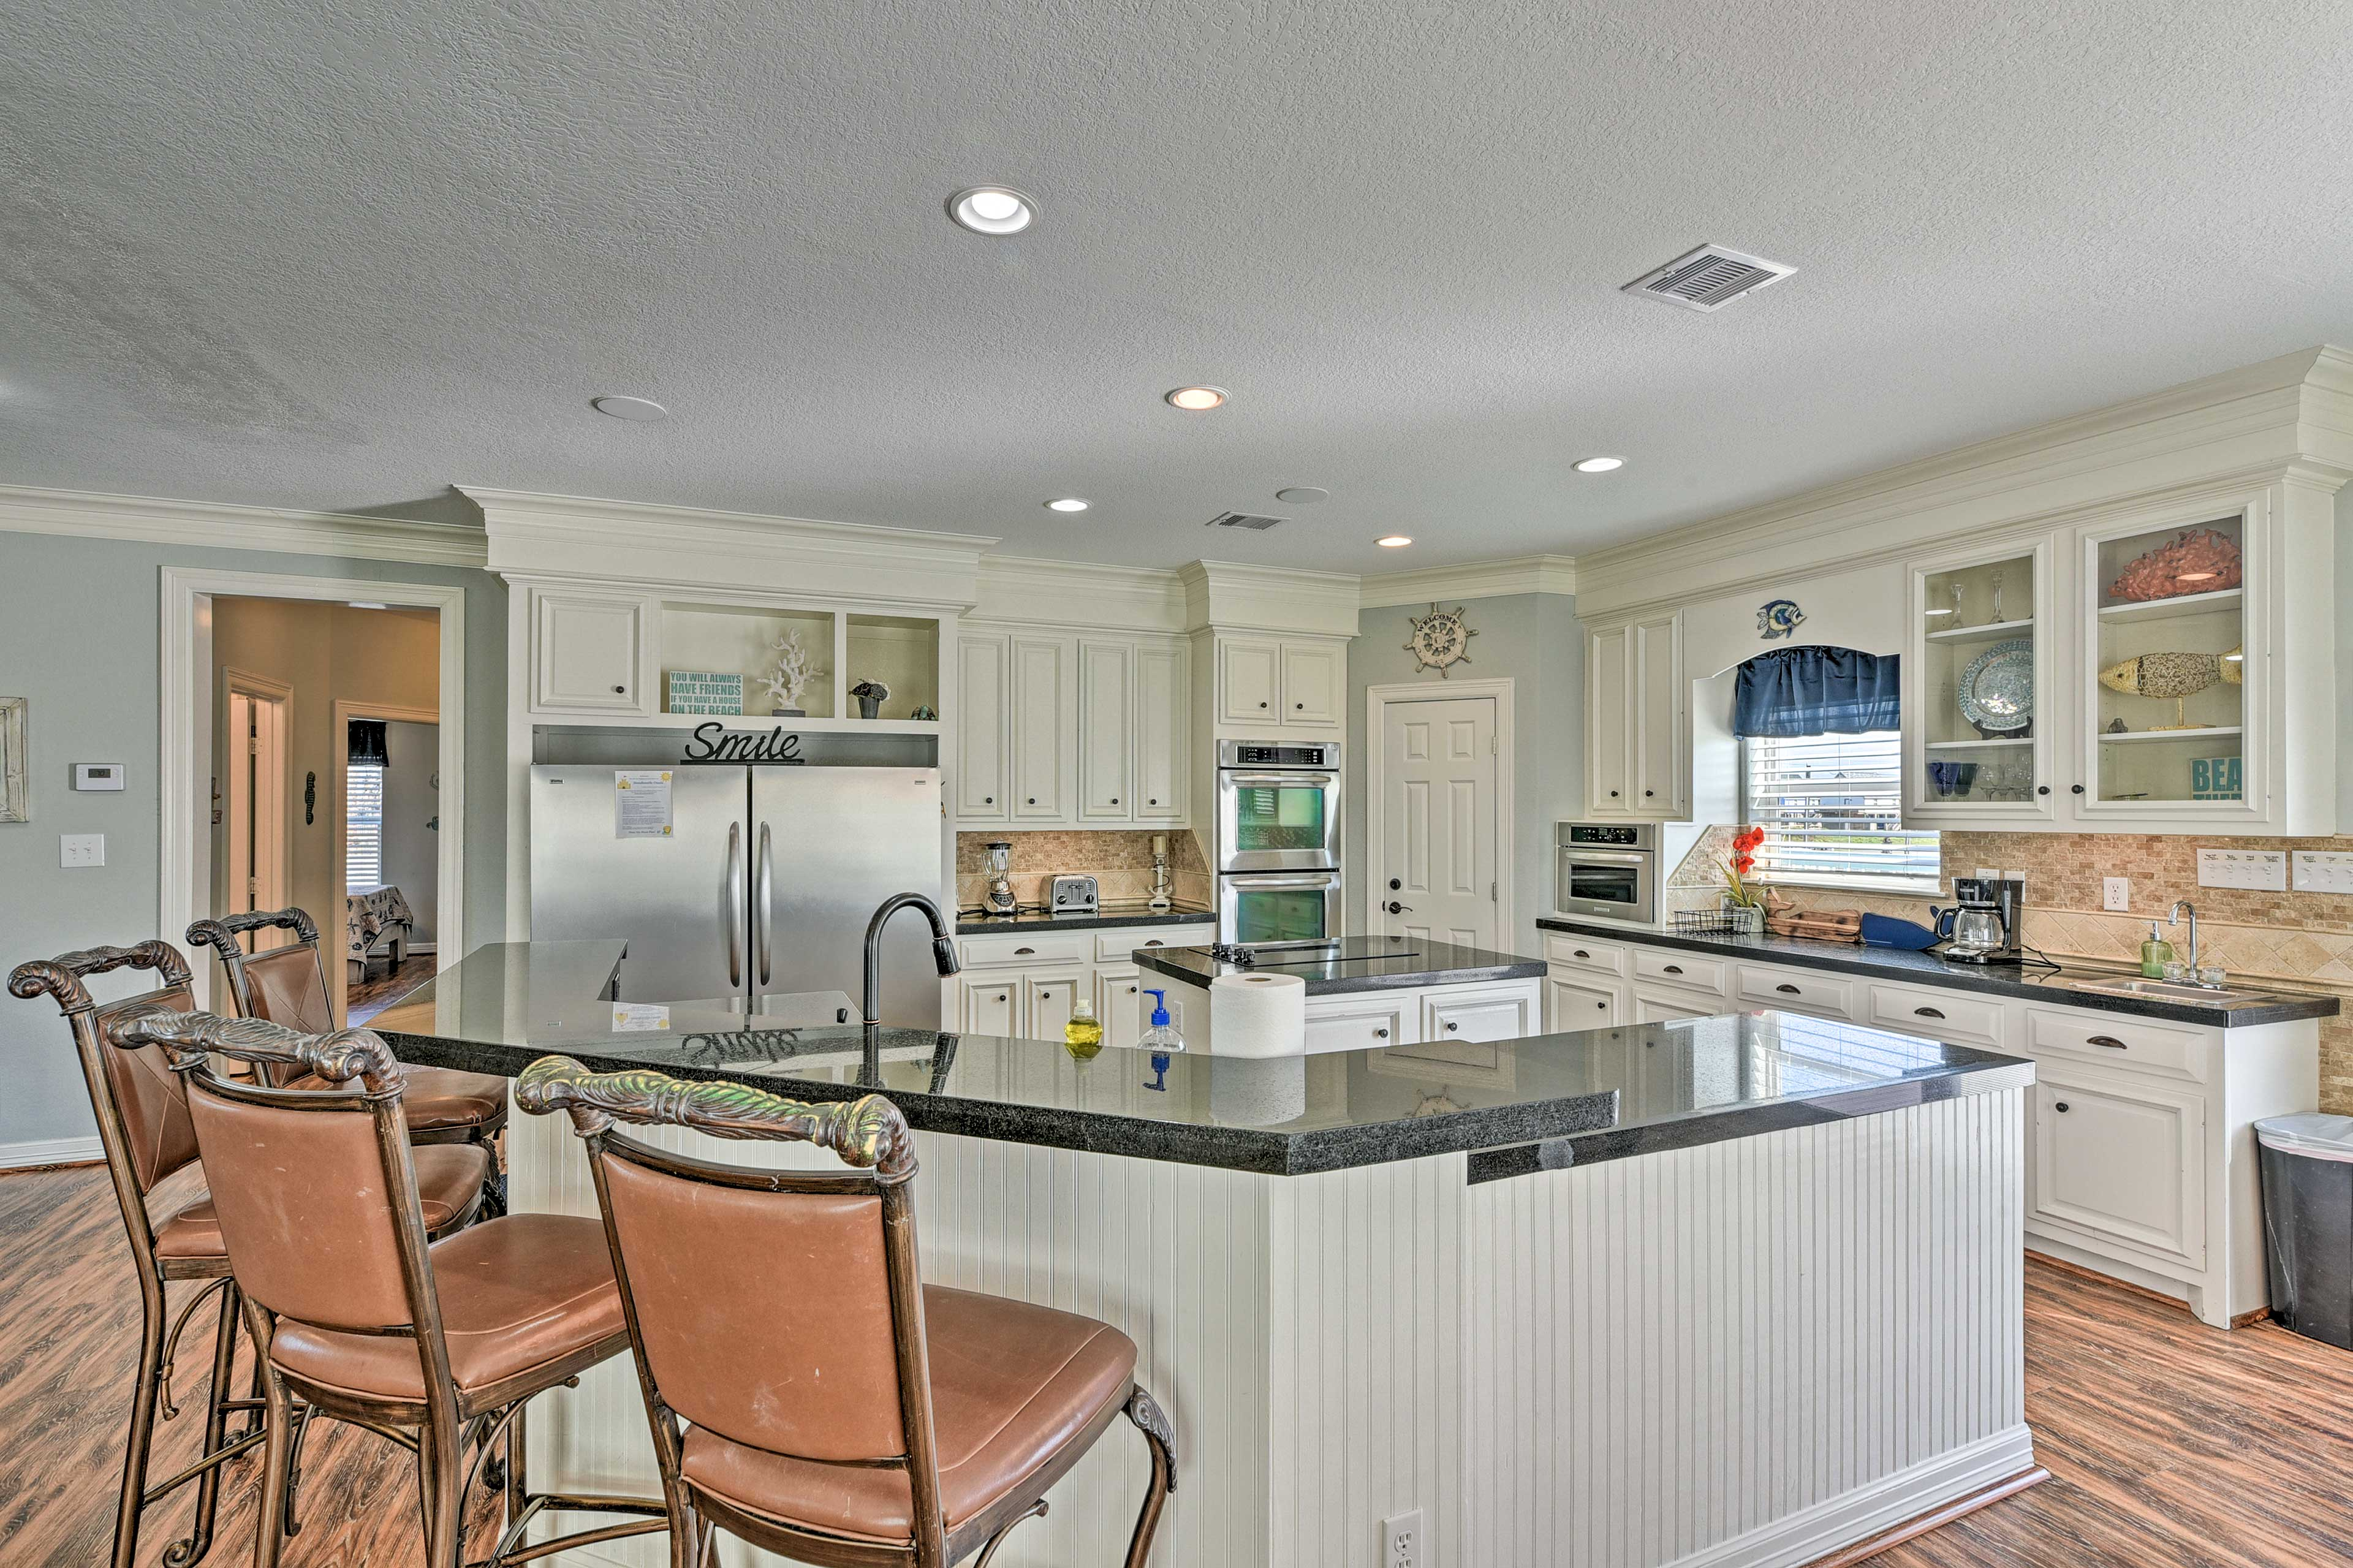 Kitchen | Fully Equipped | Custom Cabinetry | Dishwasher